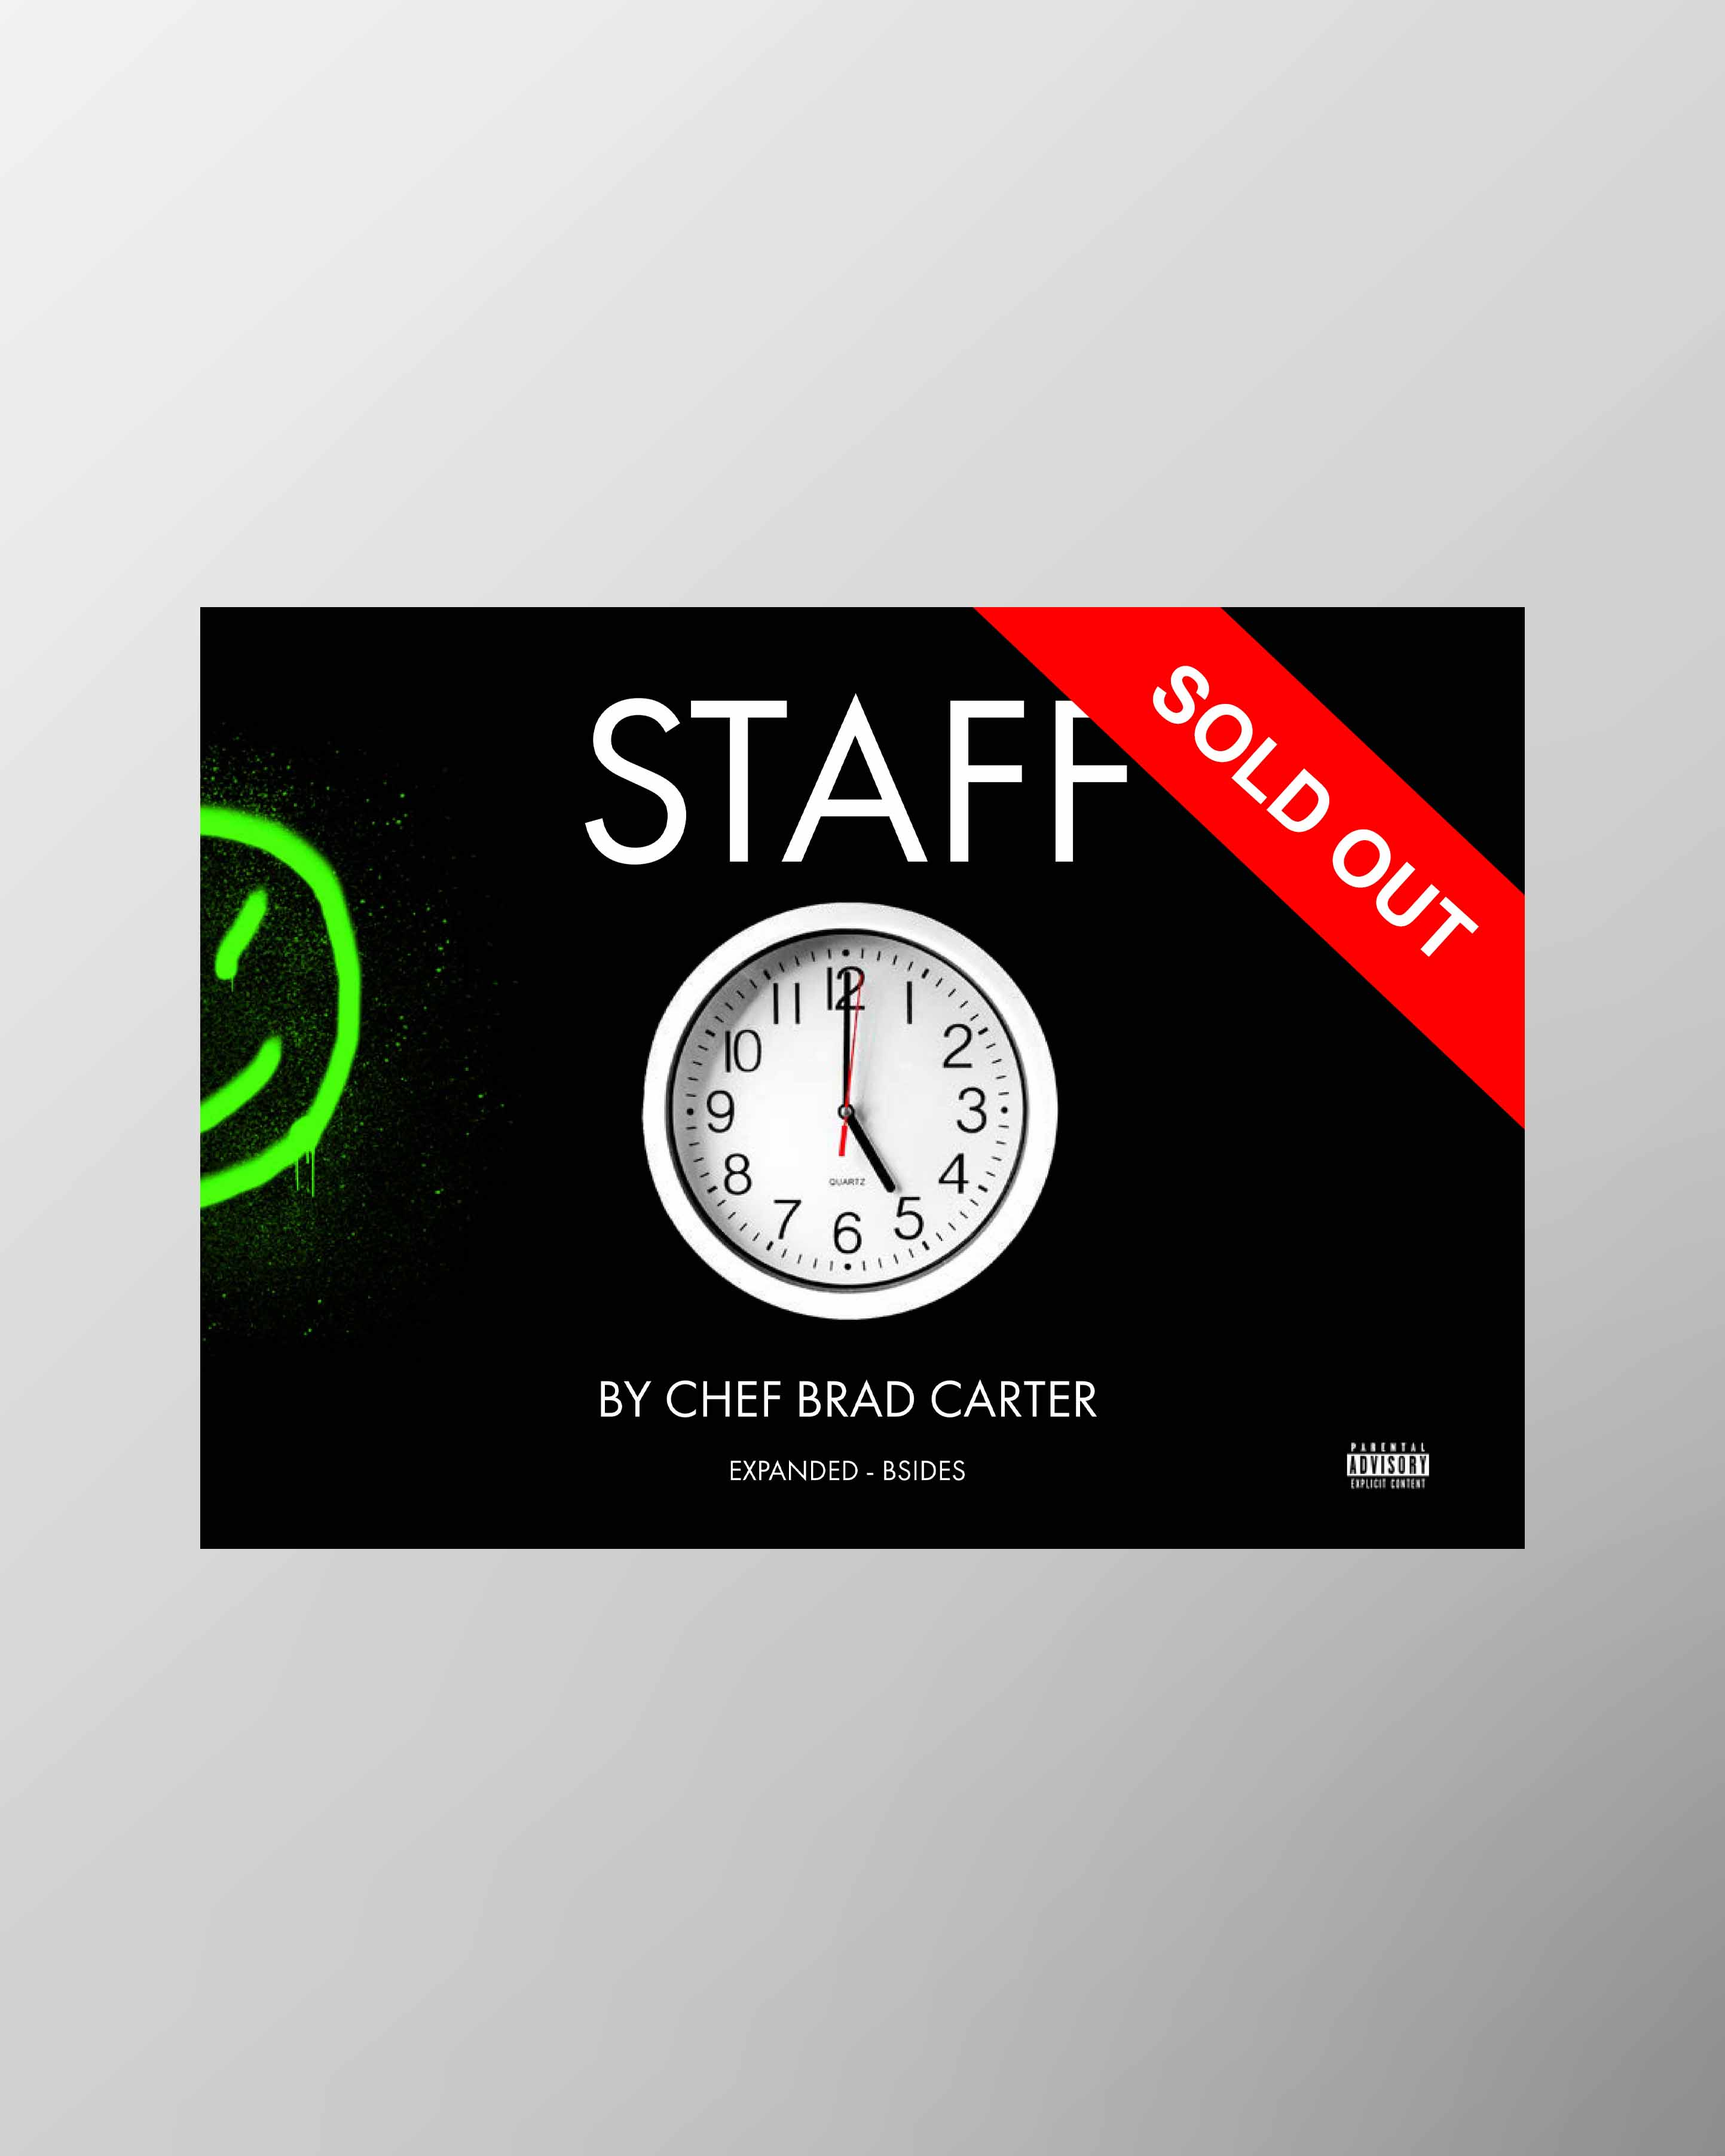 Staff - Expanded BSides